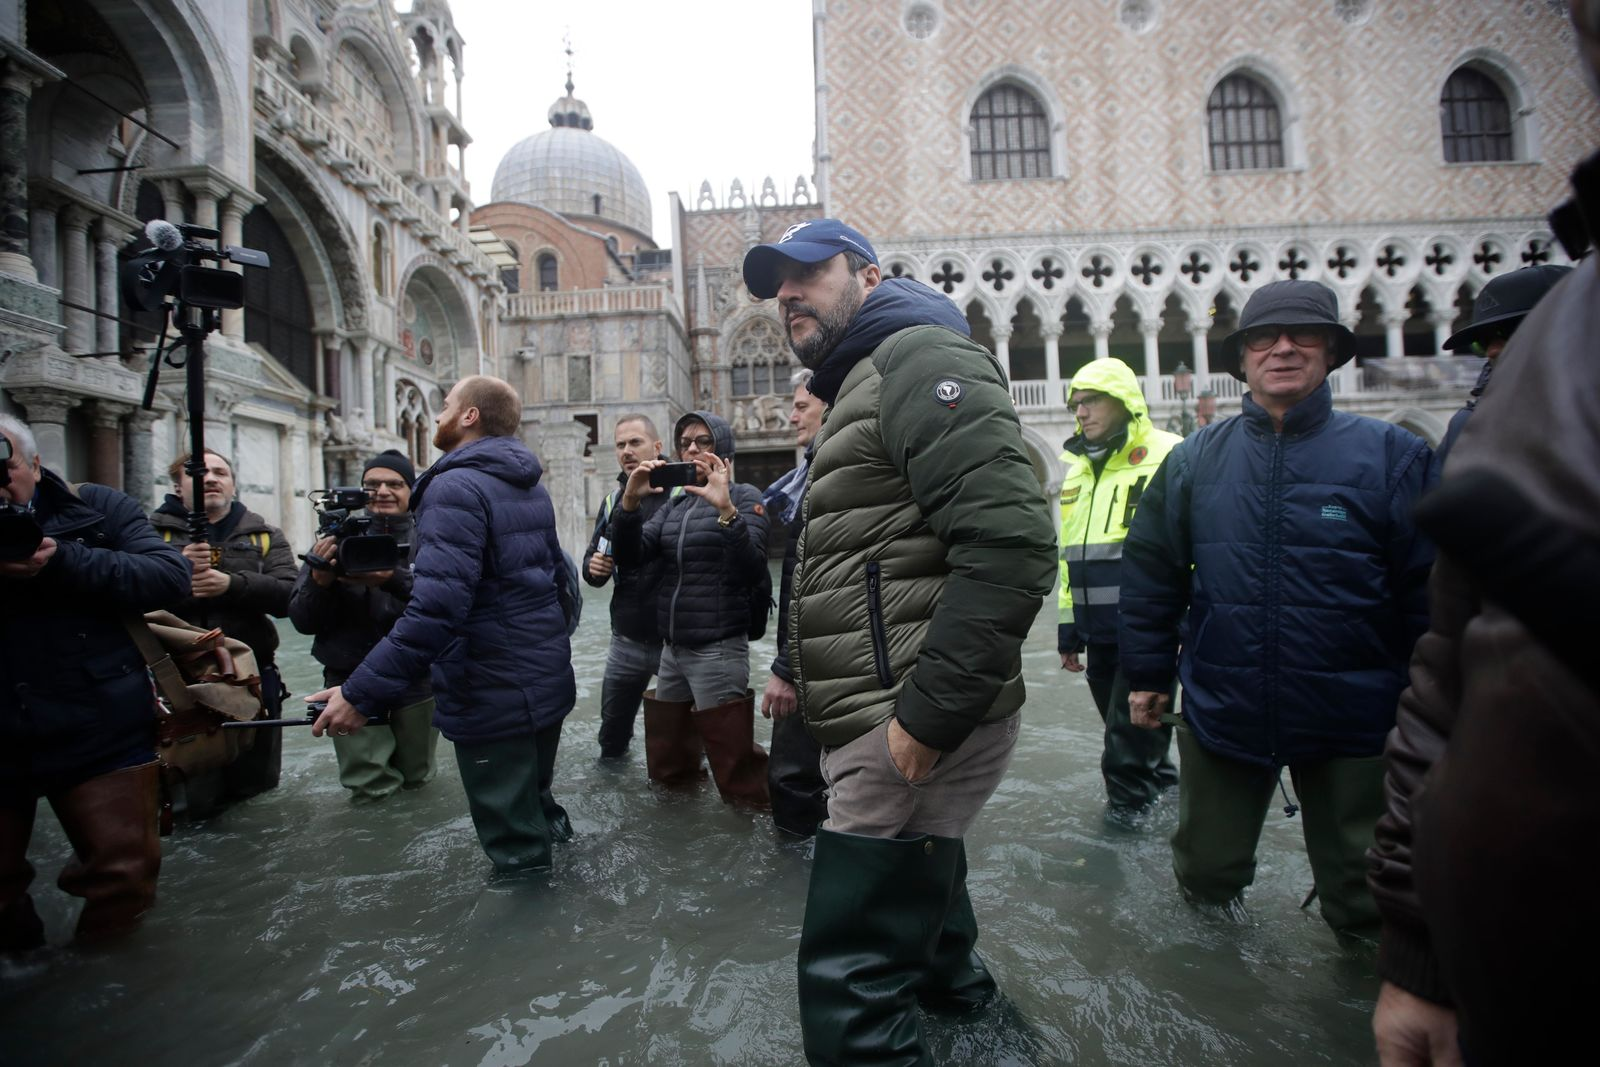 The League leader Matteo Salvini walks in a flooded St. Mark's Square at Venice, Italy, Friday, Nov. 15, 2019. (AP Photo/Luca Bruno)